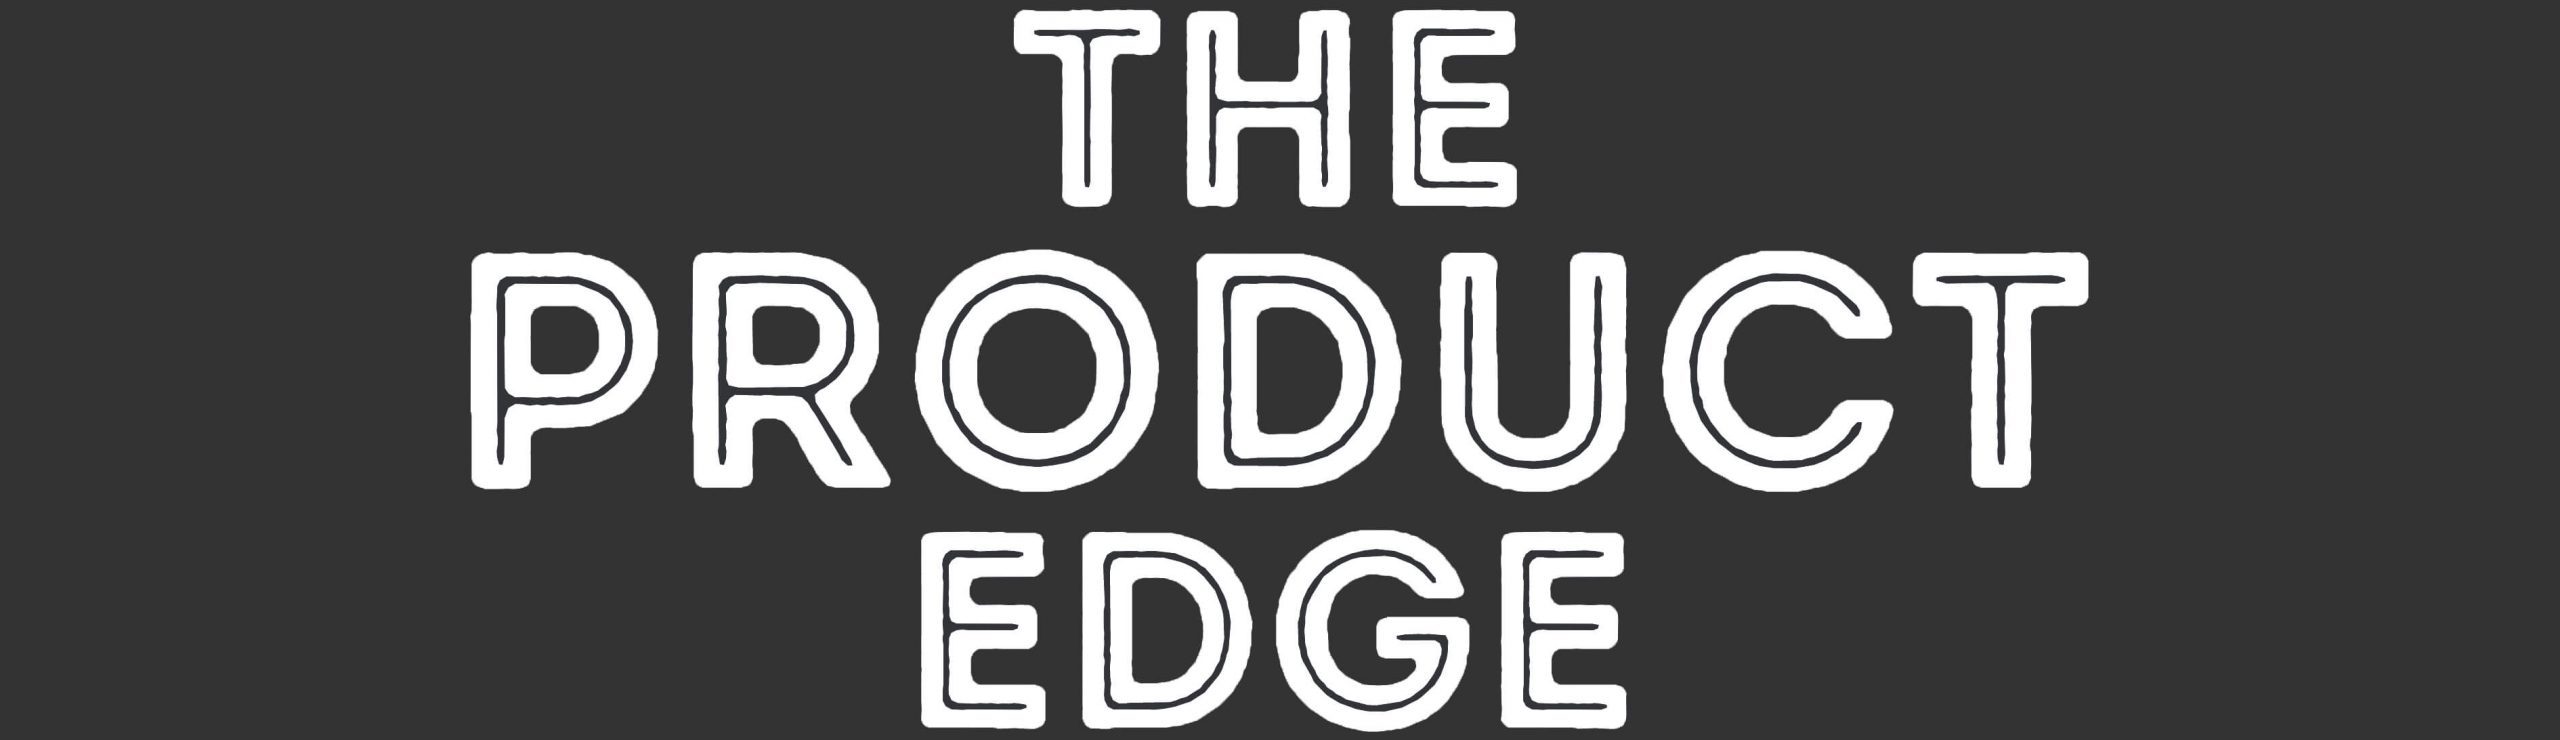 THE PRODUCT EDGE LOGO - FOOTER